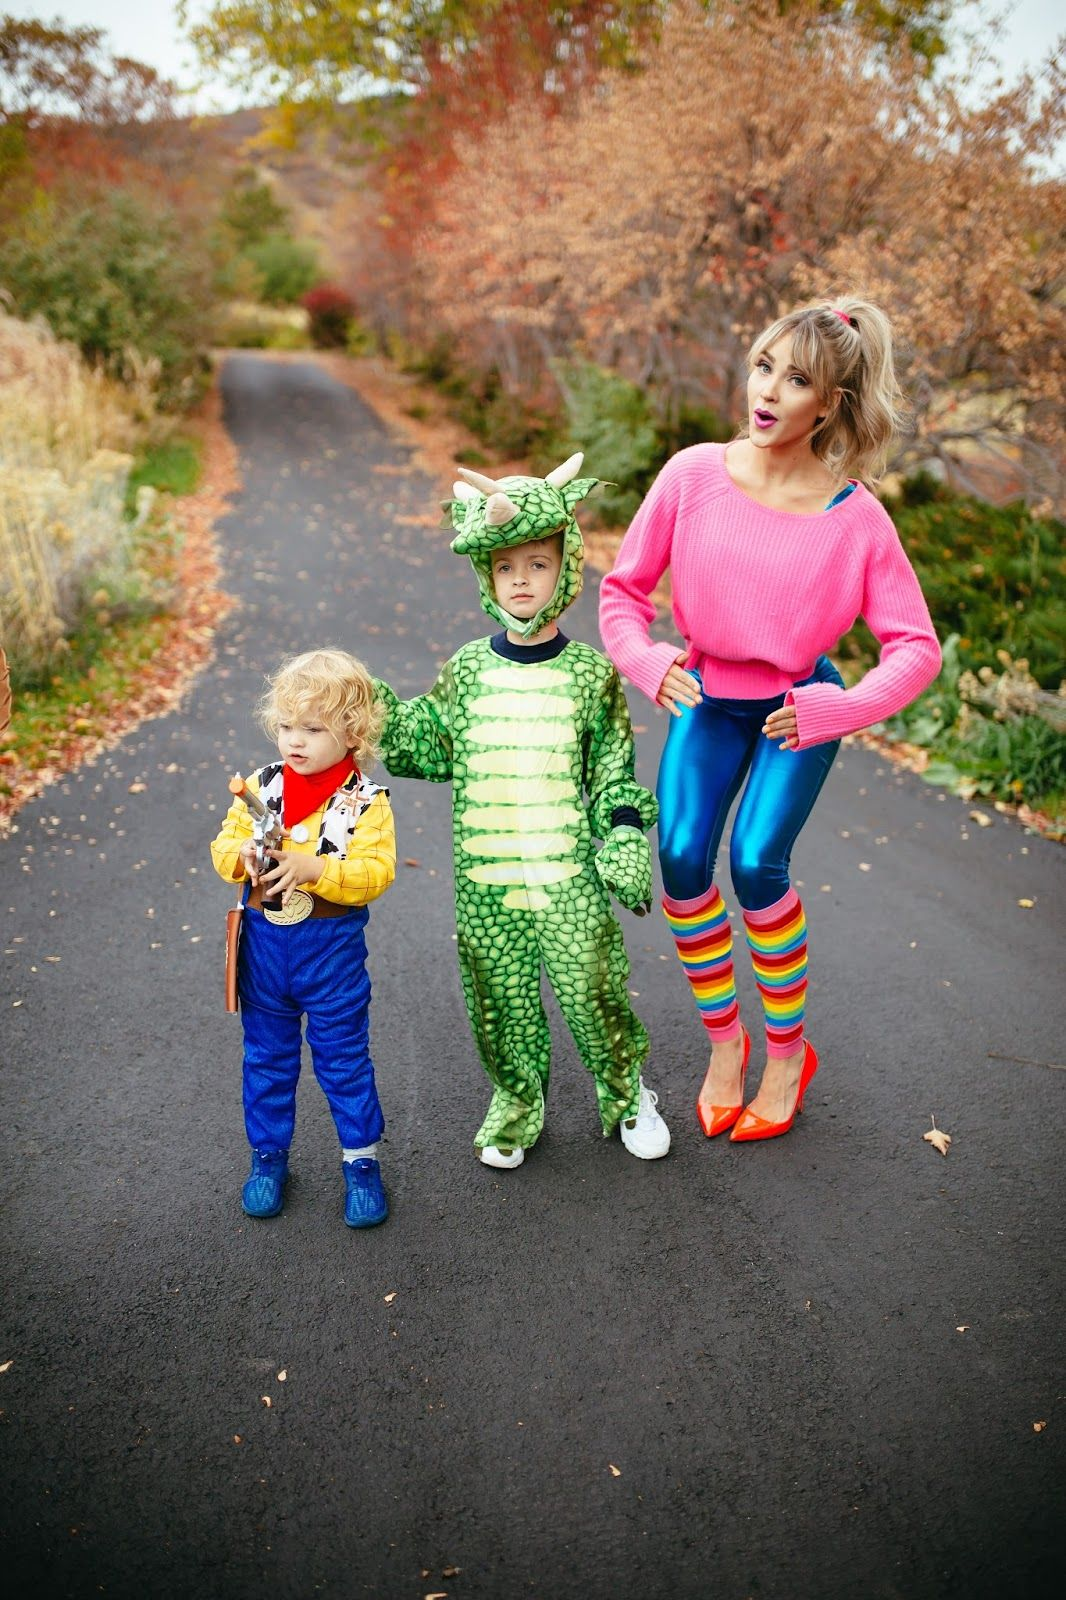 Toy Story costume woody rex and barbie  sc 1 st  Pinterest & Toy Story costume: woody rex and barbie | Cara Loren | Pinterest ...